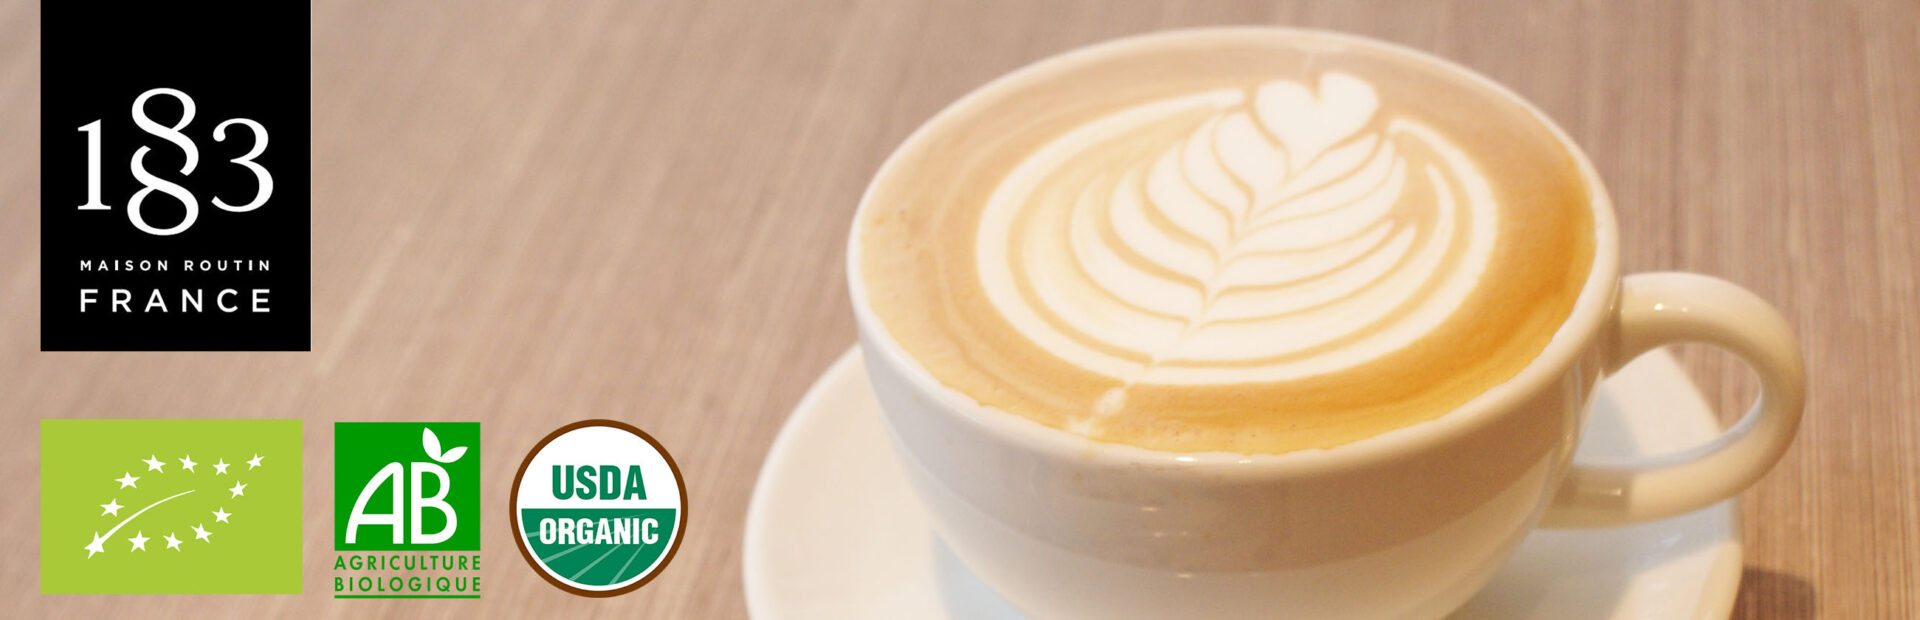 1883 organic syrup banner latte